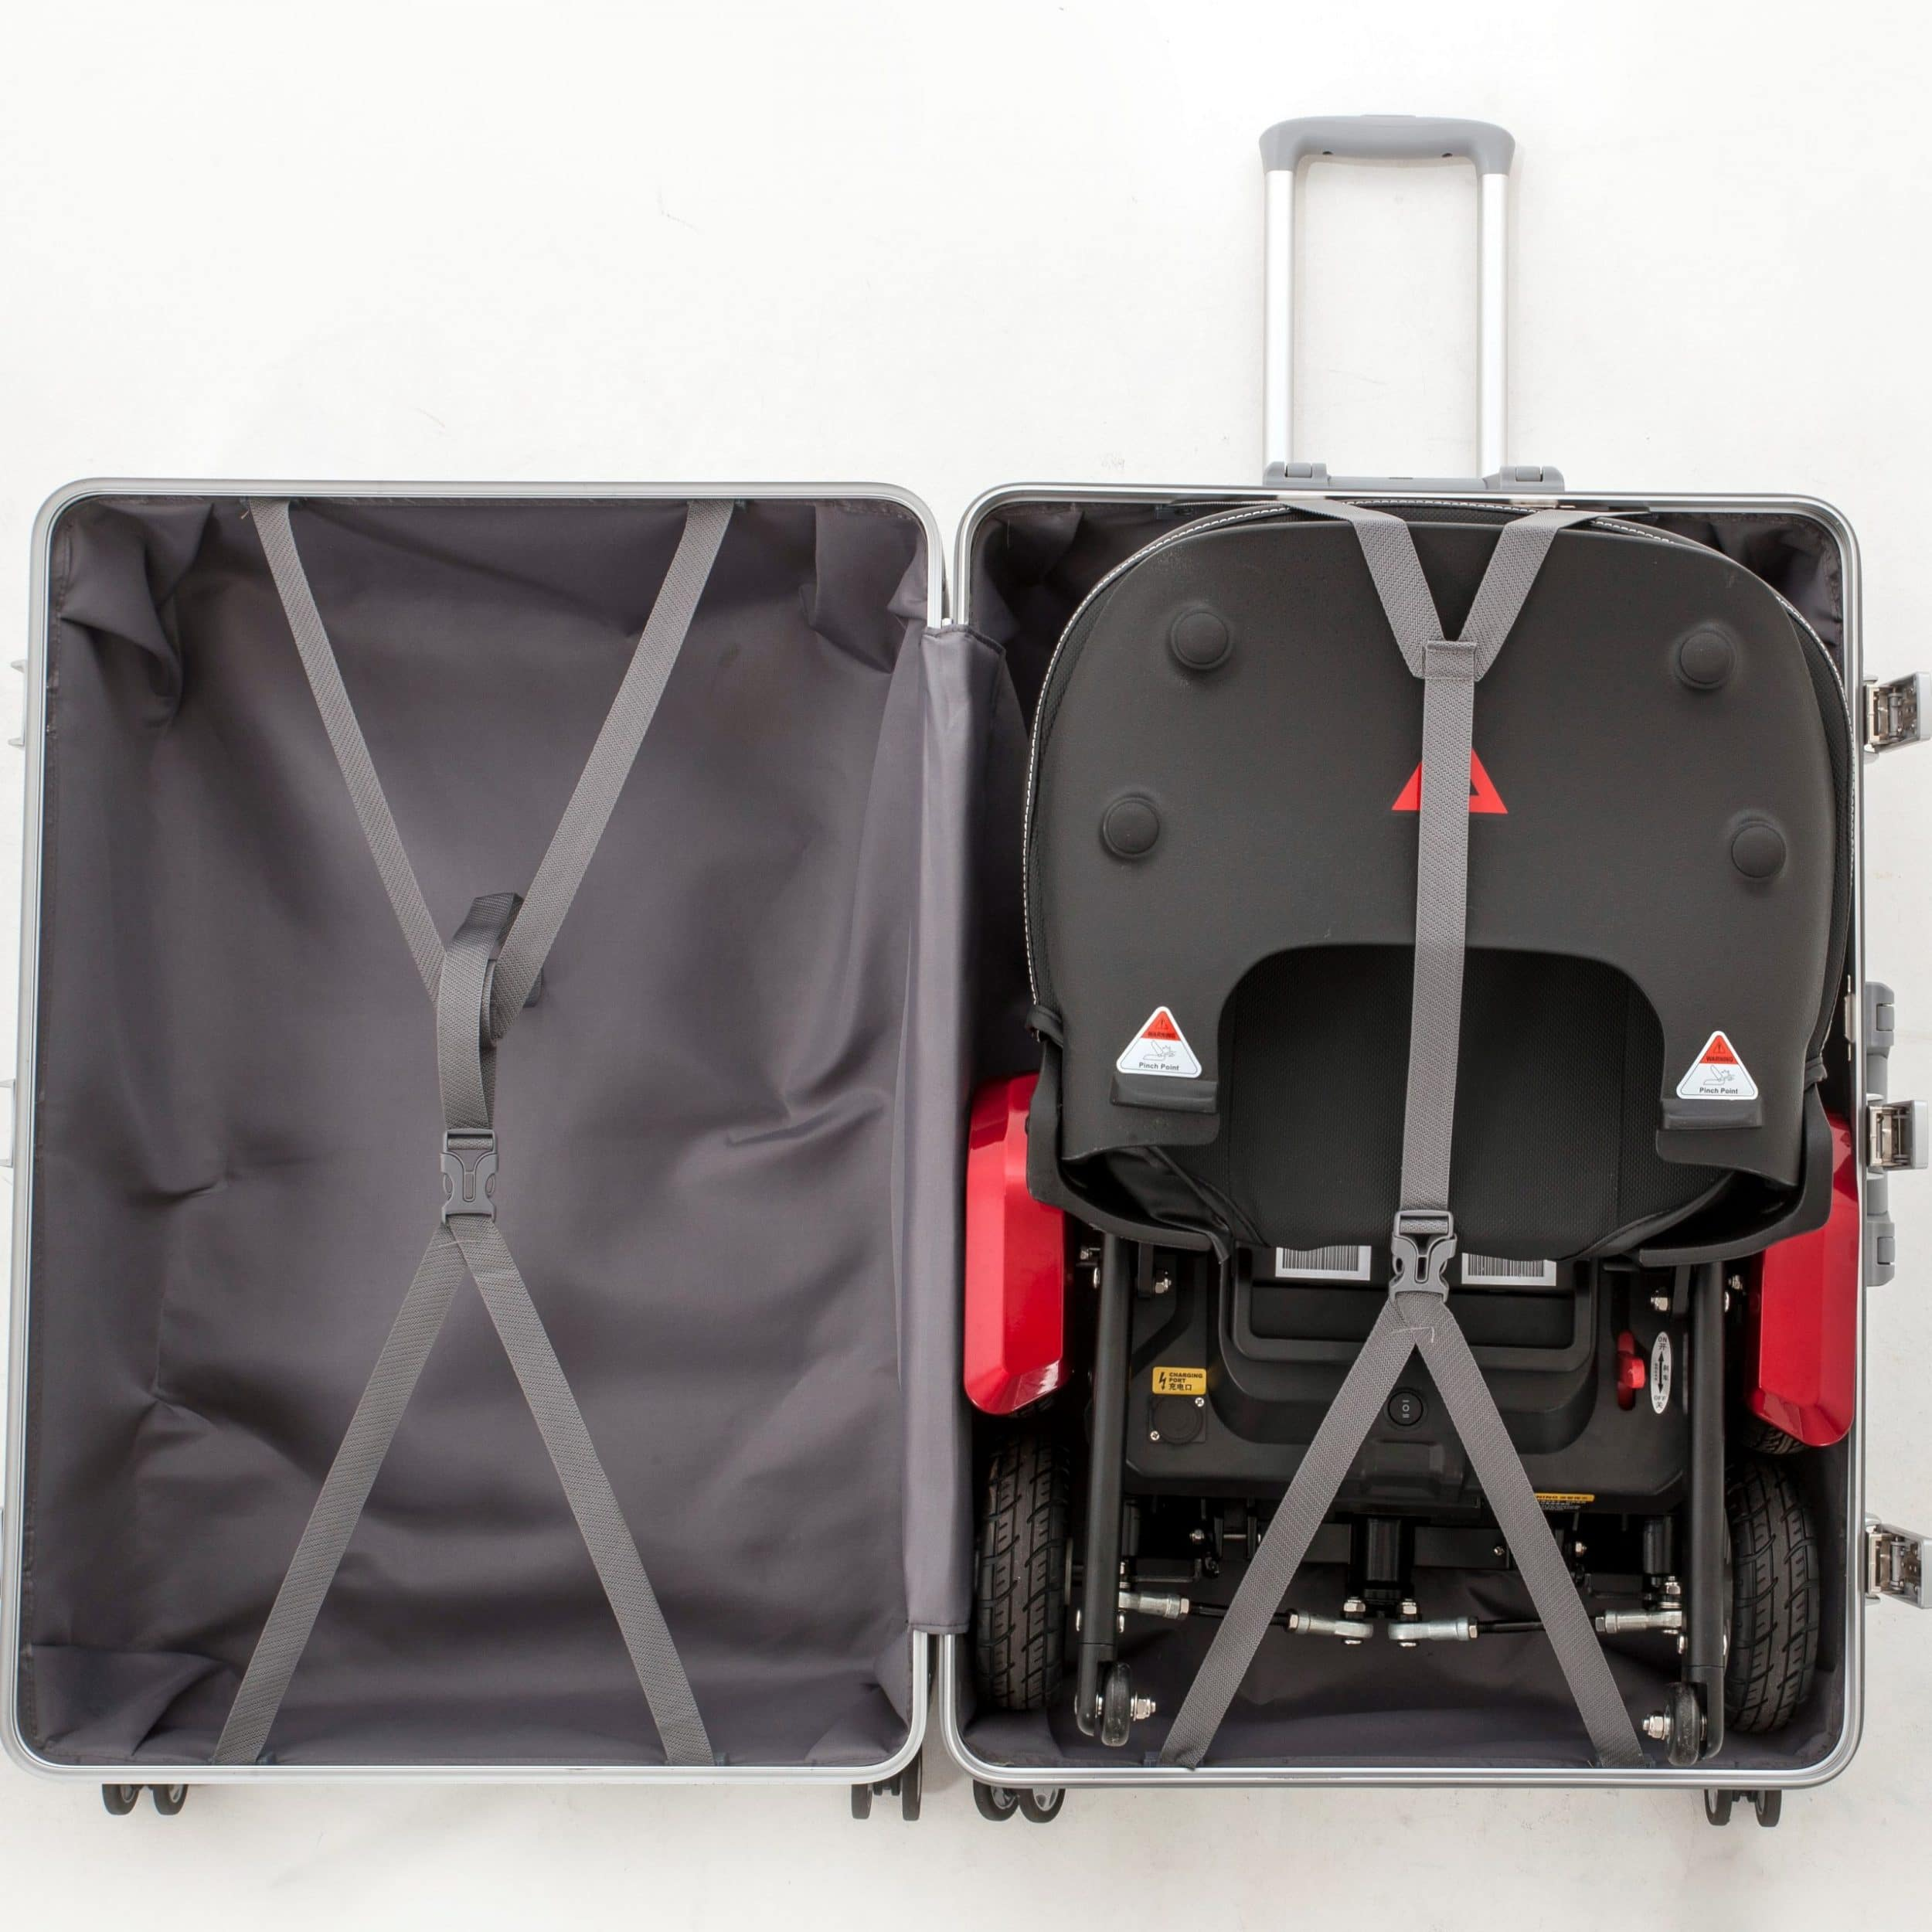 Mobility Scooter Hard Travel Case | Monarch Mobility 0808 102 2218